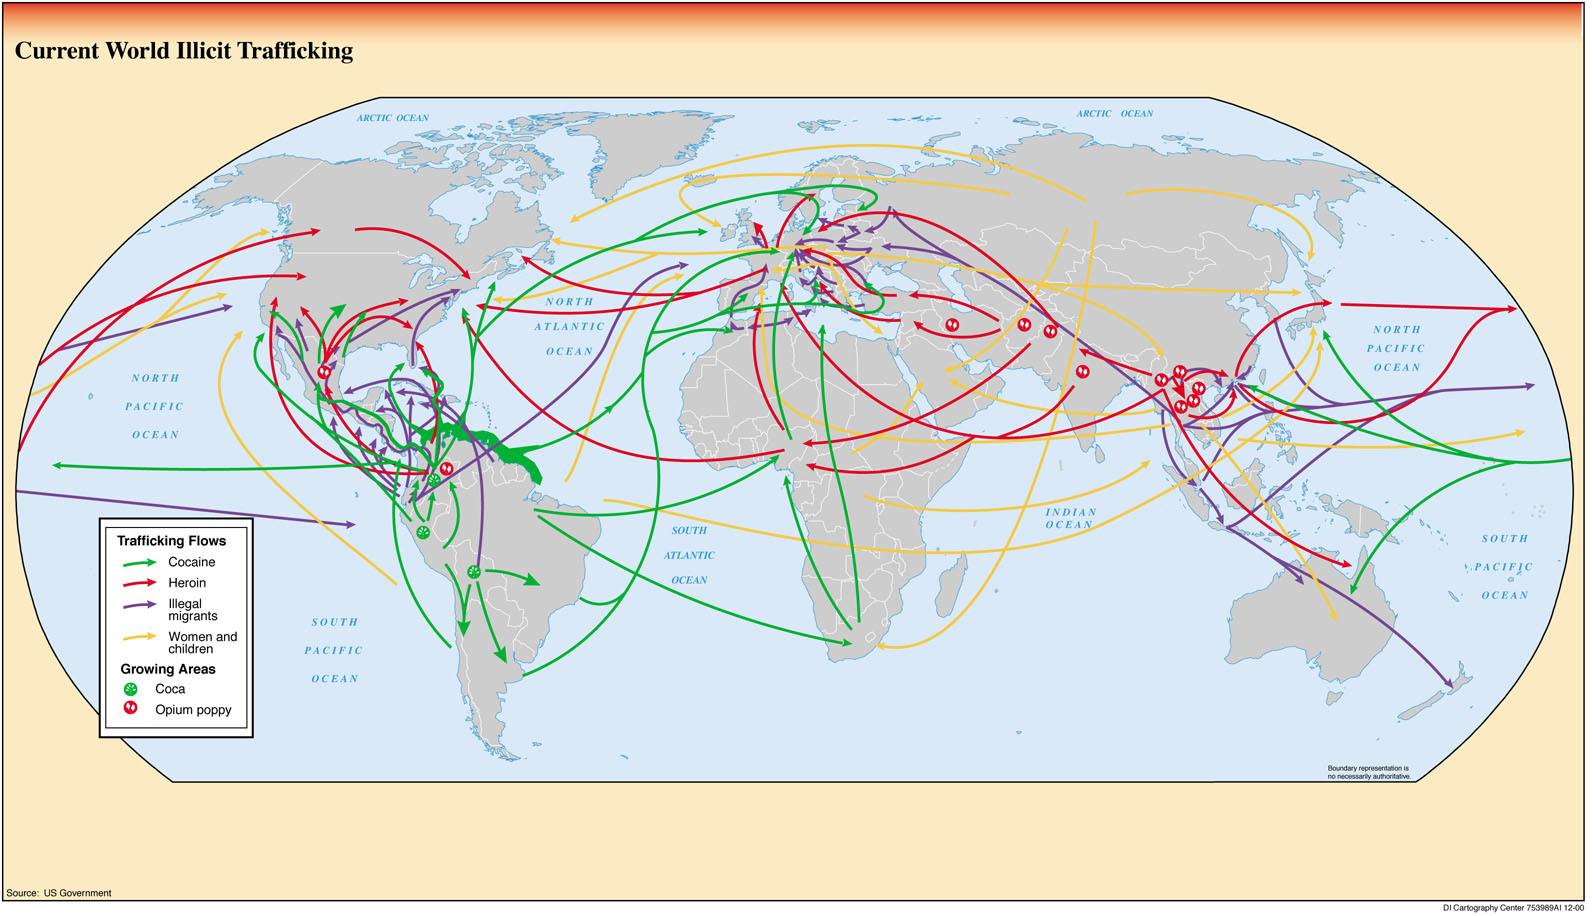 Illicit Trafficking Routes World Map World Mappery - Current world map